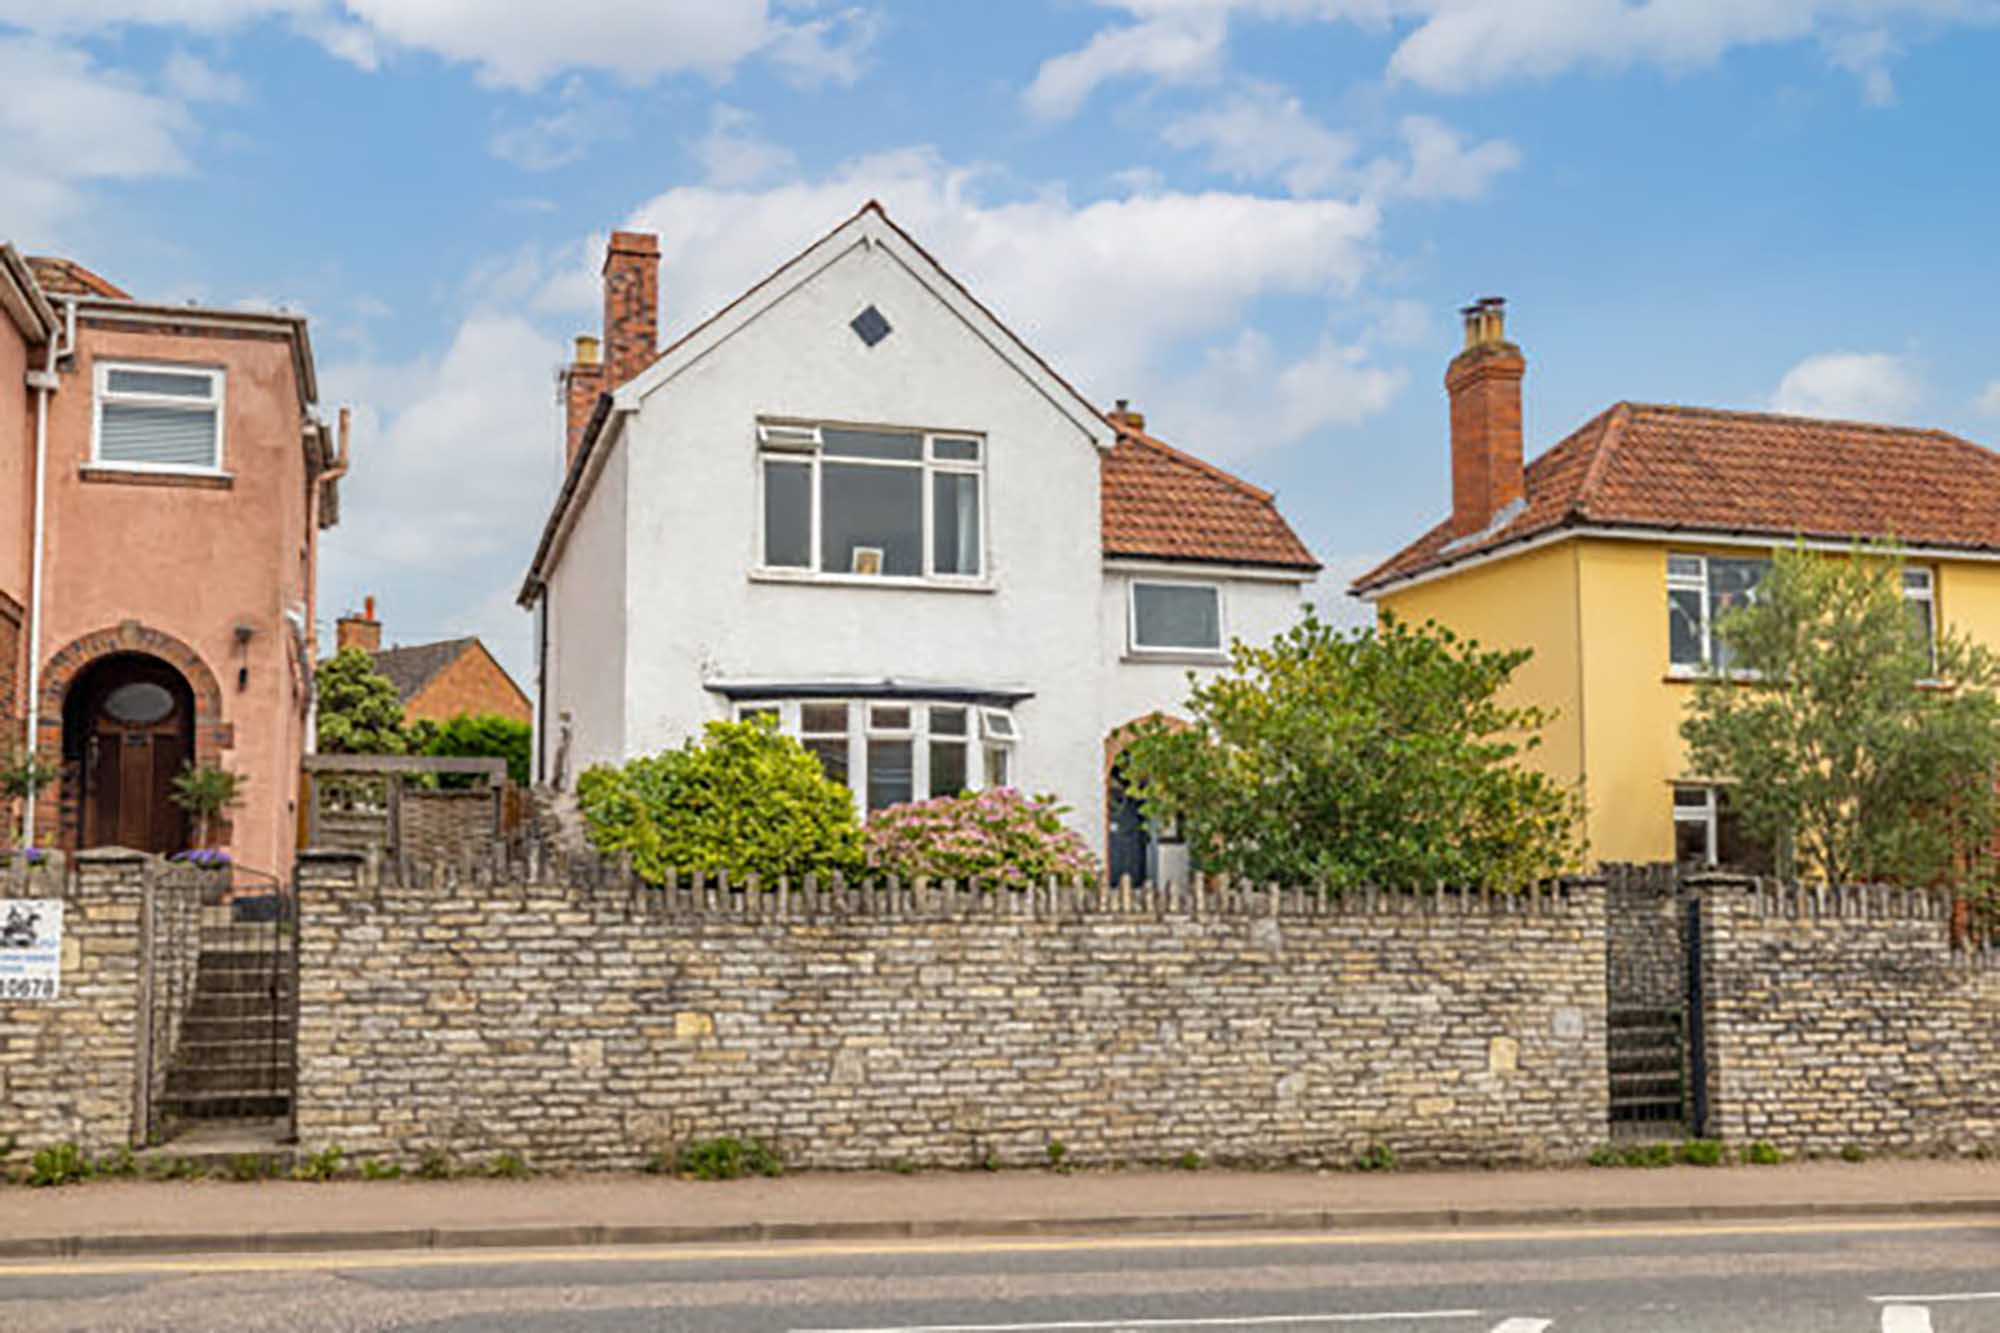 Large Detached house close to city centre with parking